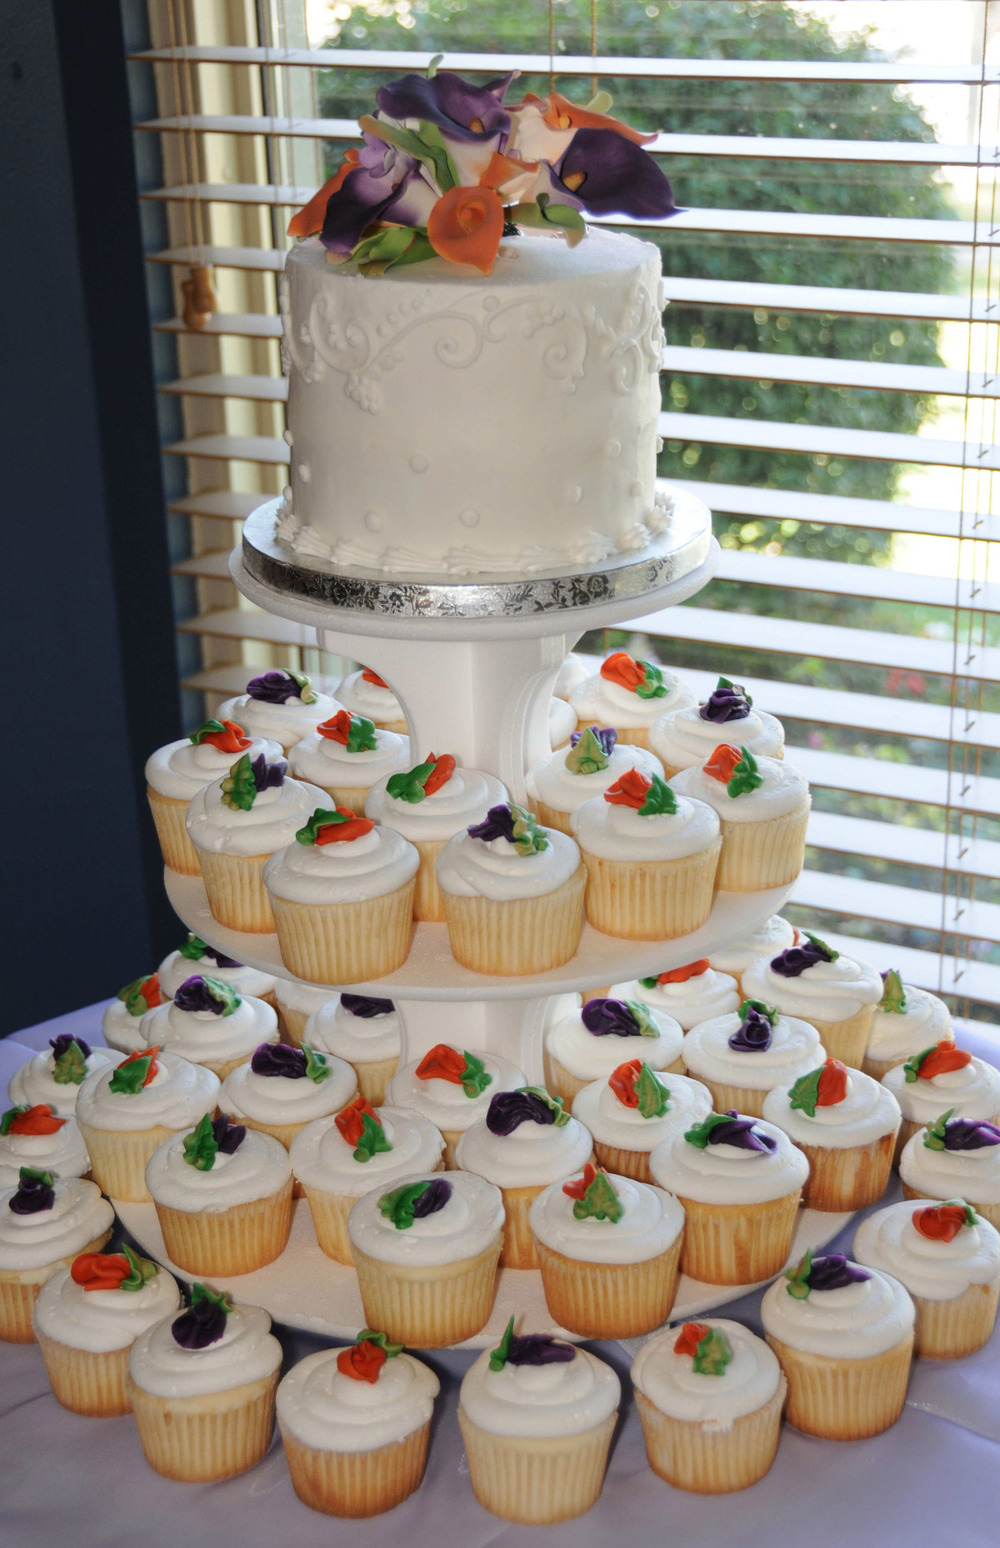 Rosebud Wedding Cupcakes